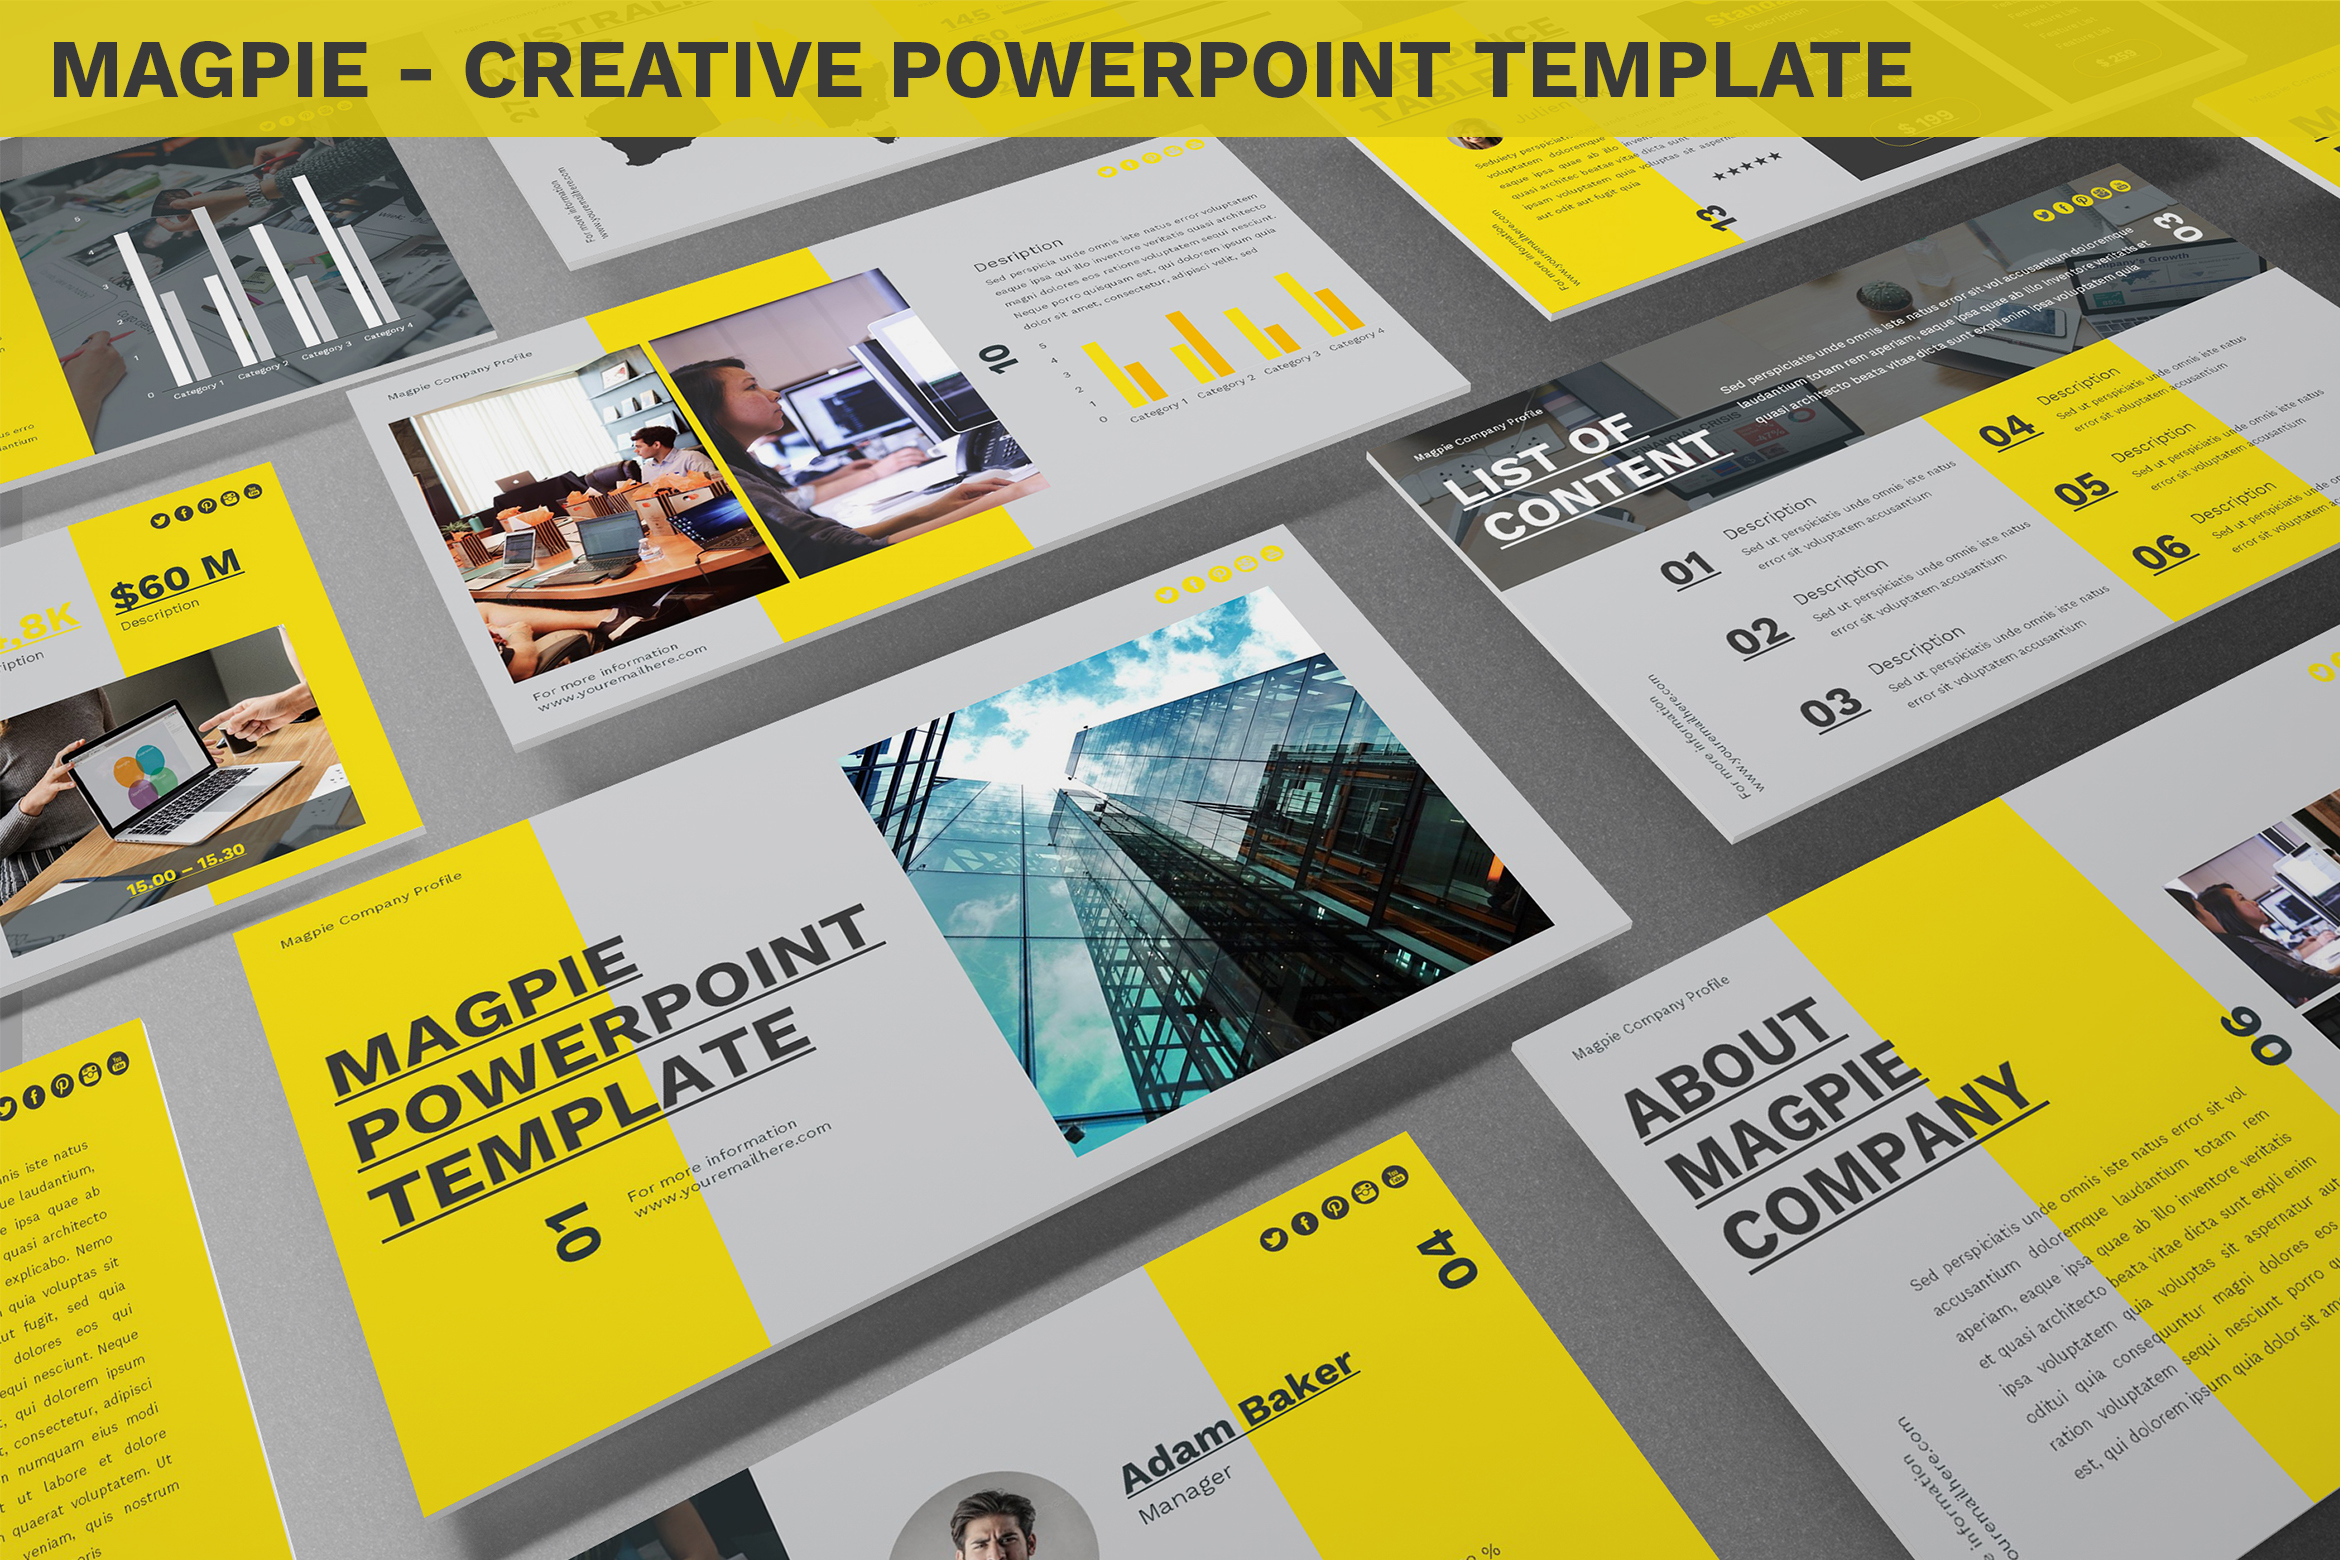 Magpie - Creative Powerpoint Template example image 1